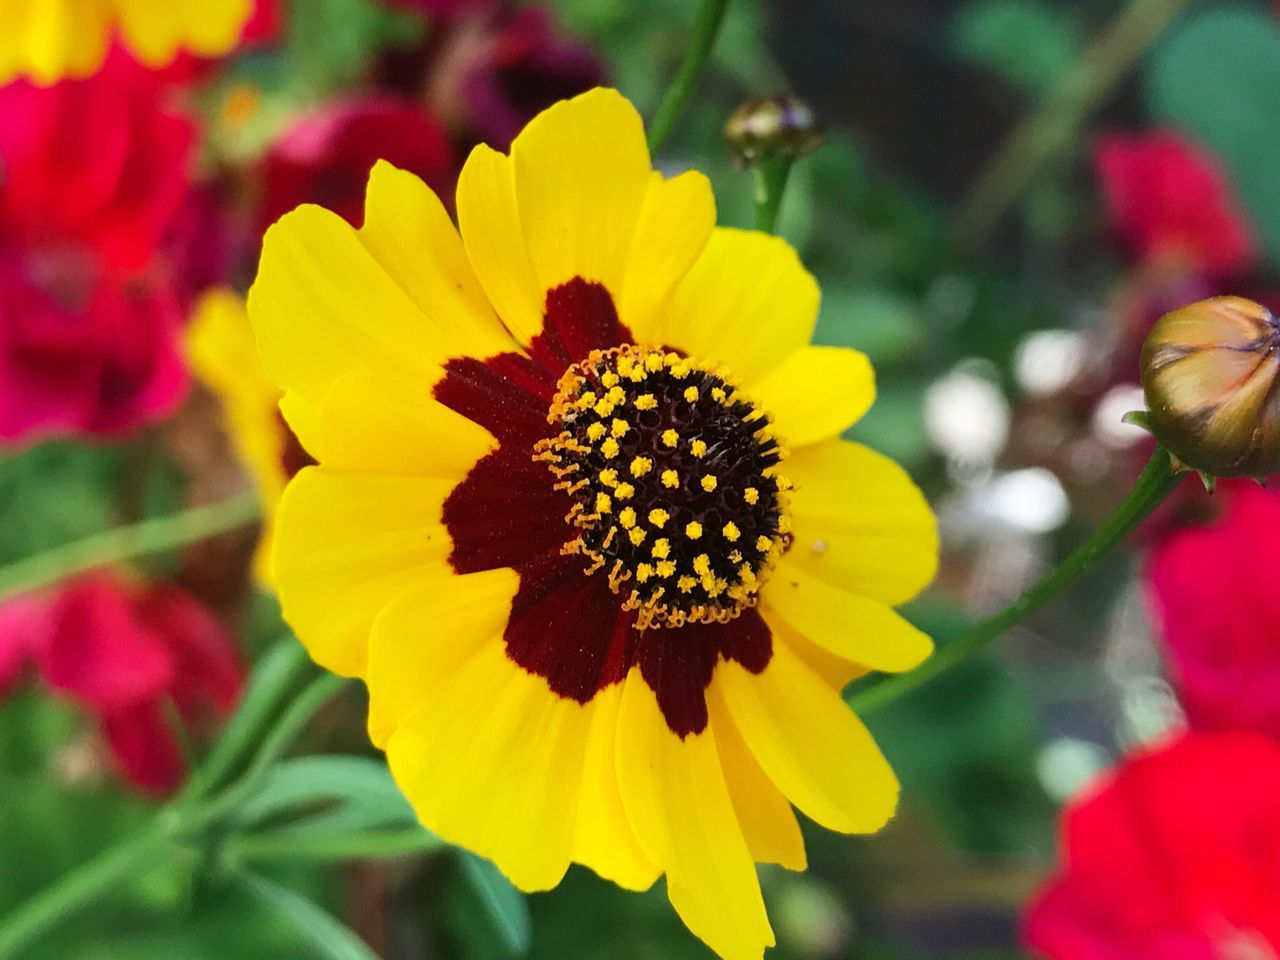 Flower Yellow Petal Growth Fragility Beauty In Nature Flower Head Nature Plant Freshness Blooming No People Day Outdoors Close-up Targetes Tagetes Flowers Tagetes Tagetes Marigolds Marigold Marigold Flower Marigolds